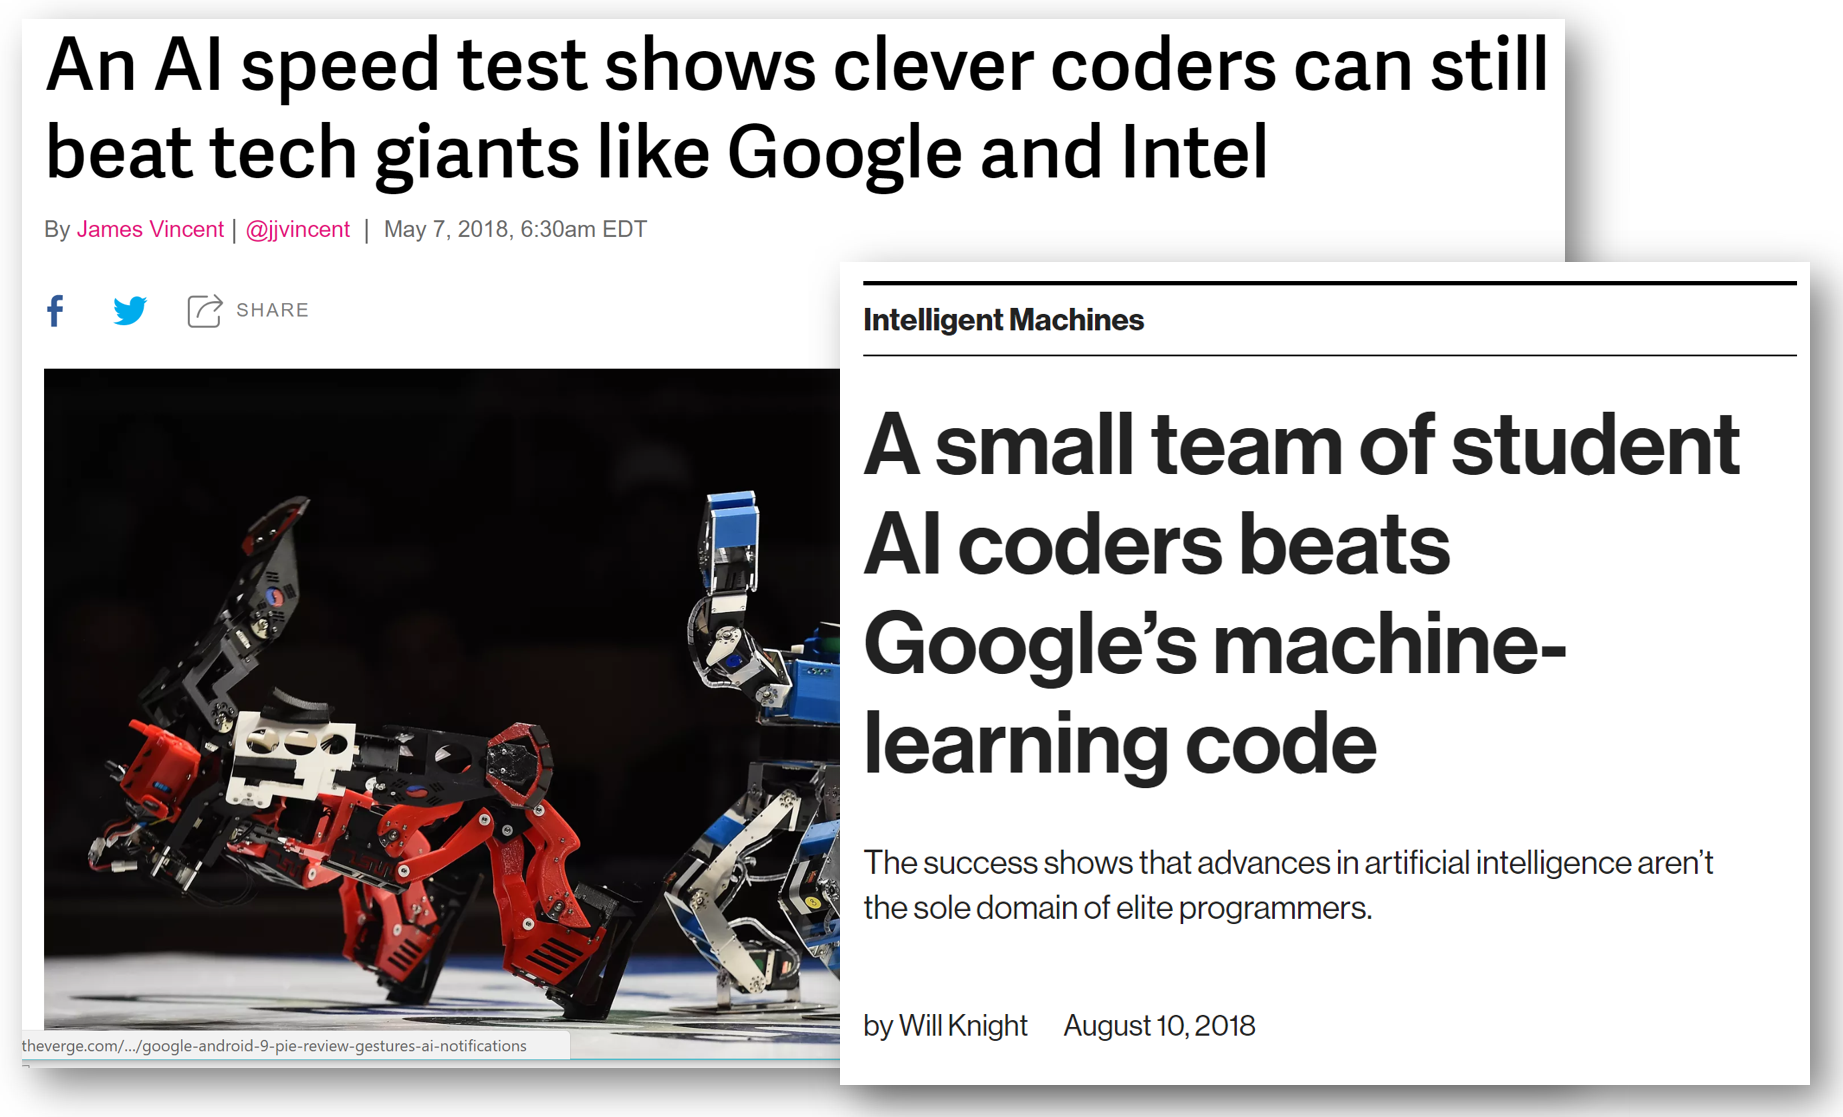 Coverage of fast.ai in the Verge and MIT Technology Review